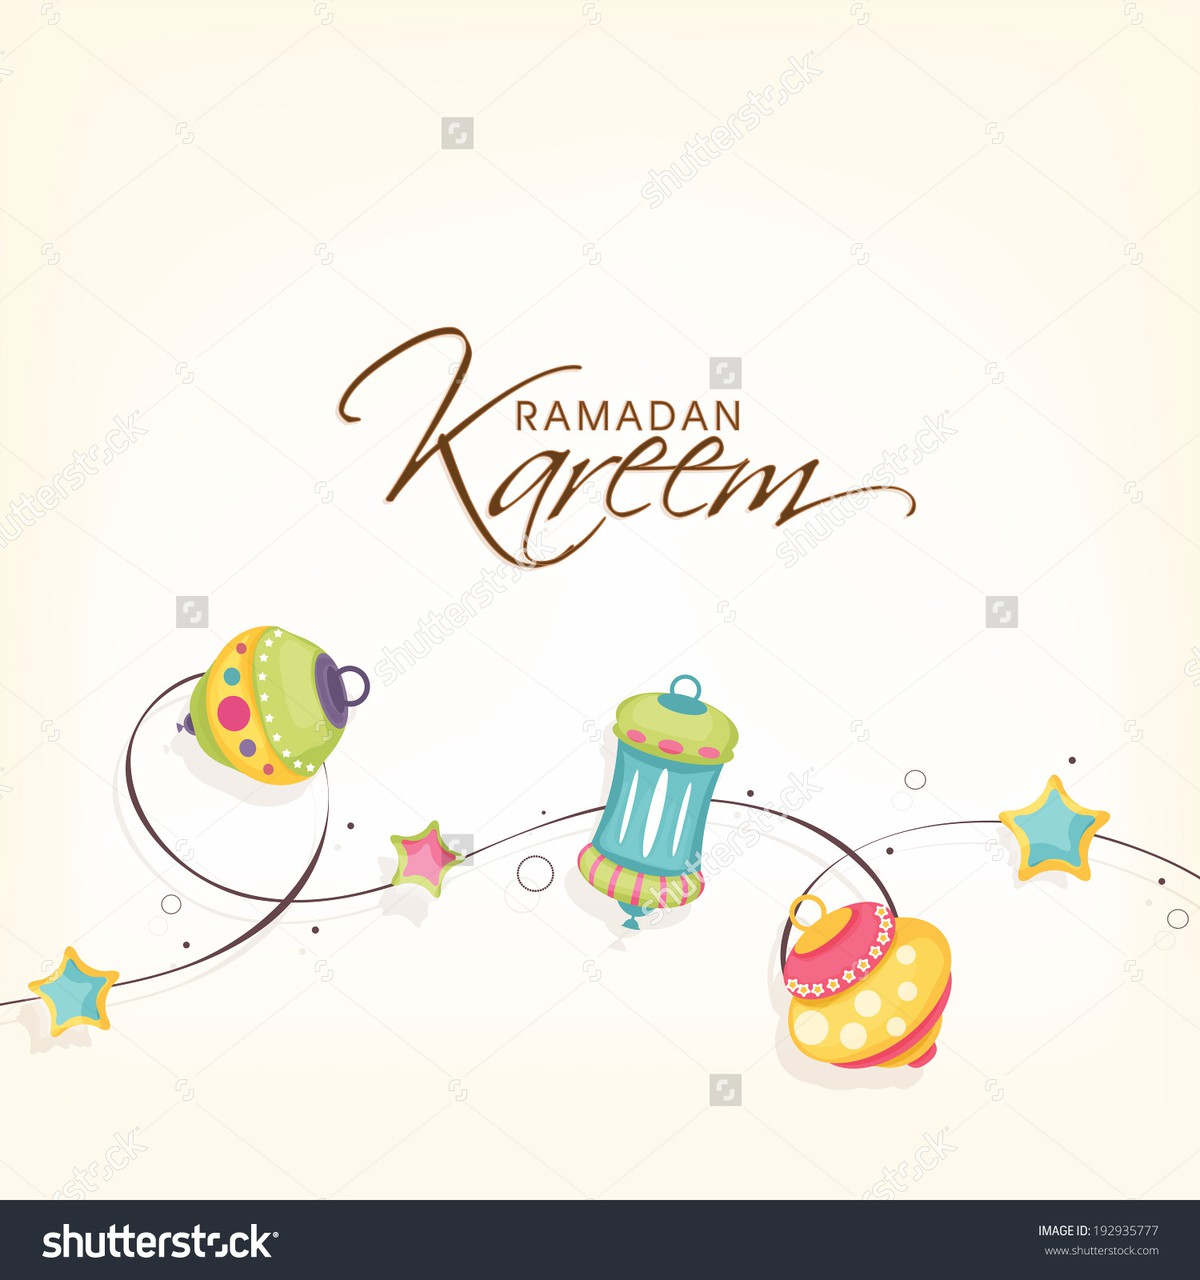 stock-vector-beautiful-greeting-card-design-with-colourful-different-styles-lanterns-or-lamps-with-st